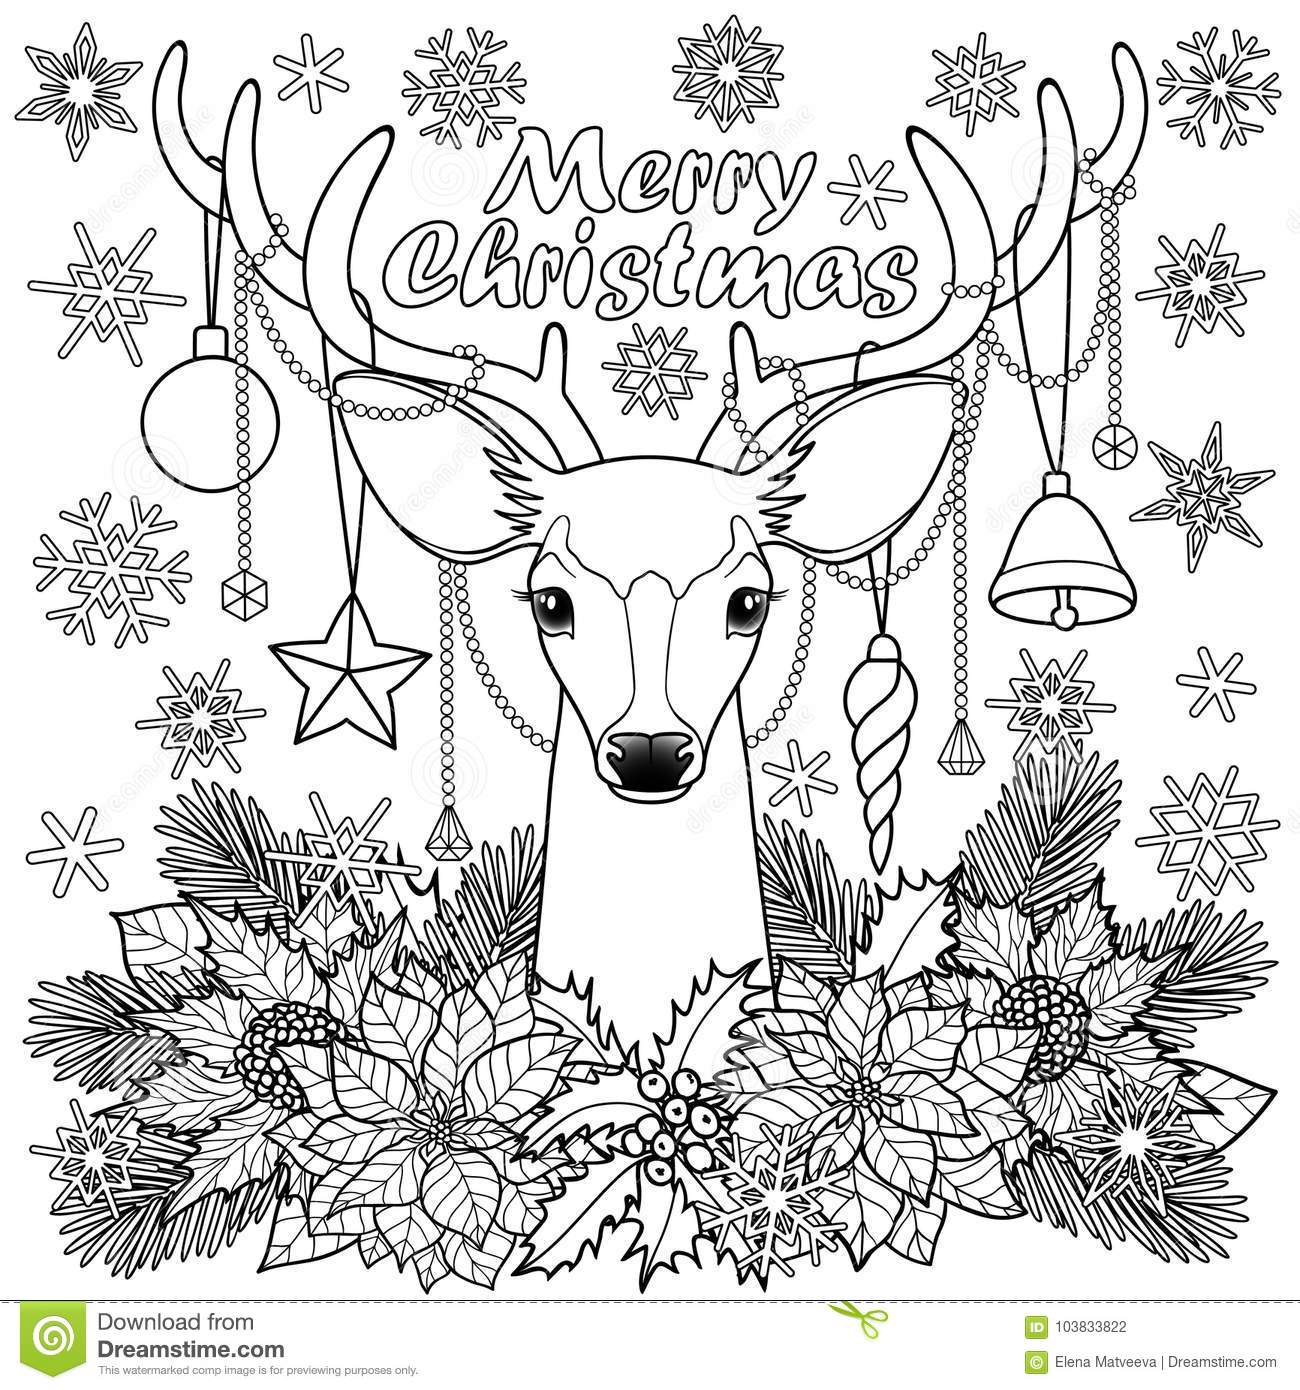 Merry Christmas Deer Outline Composition